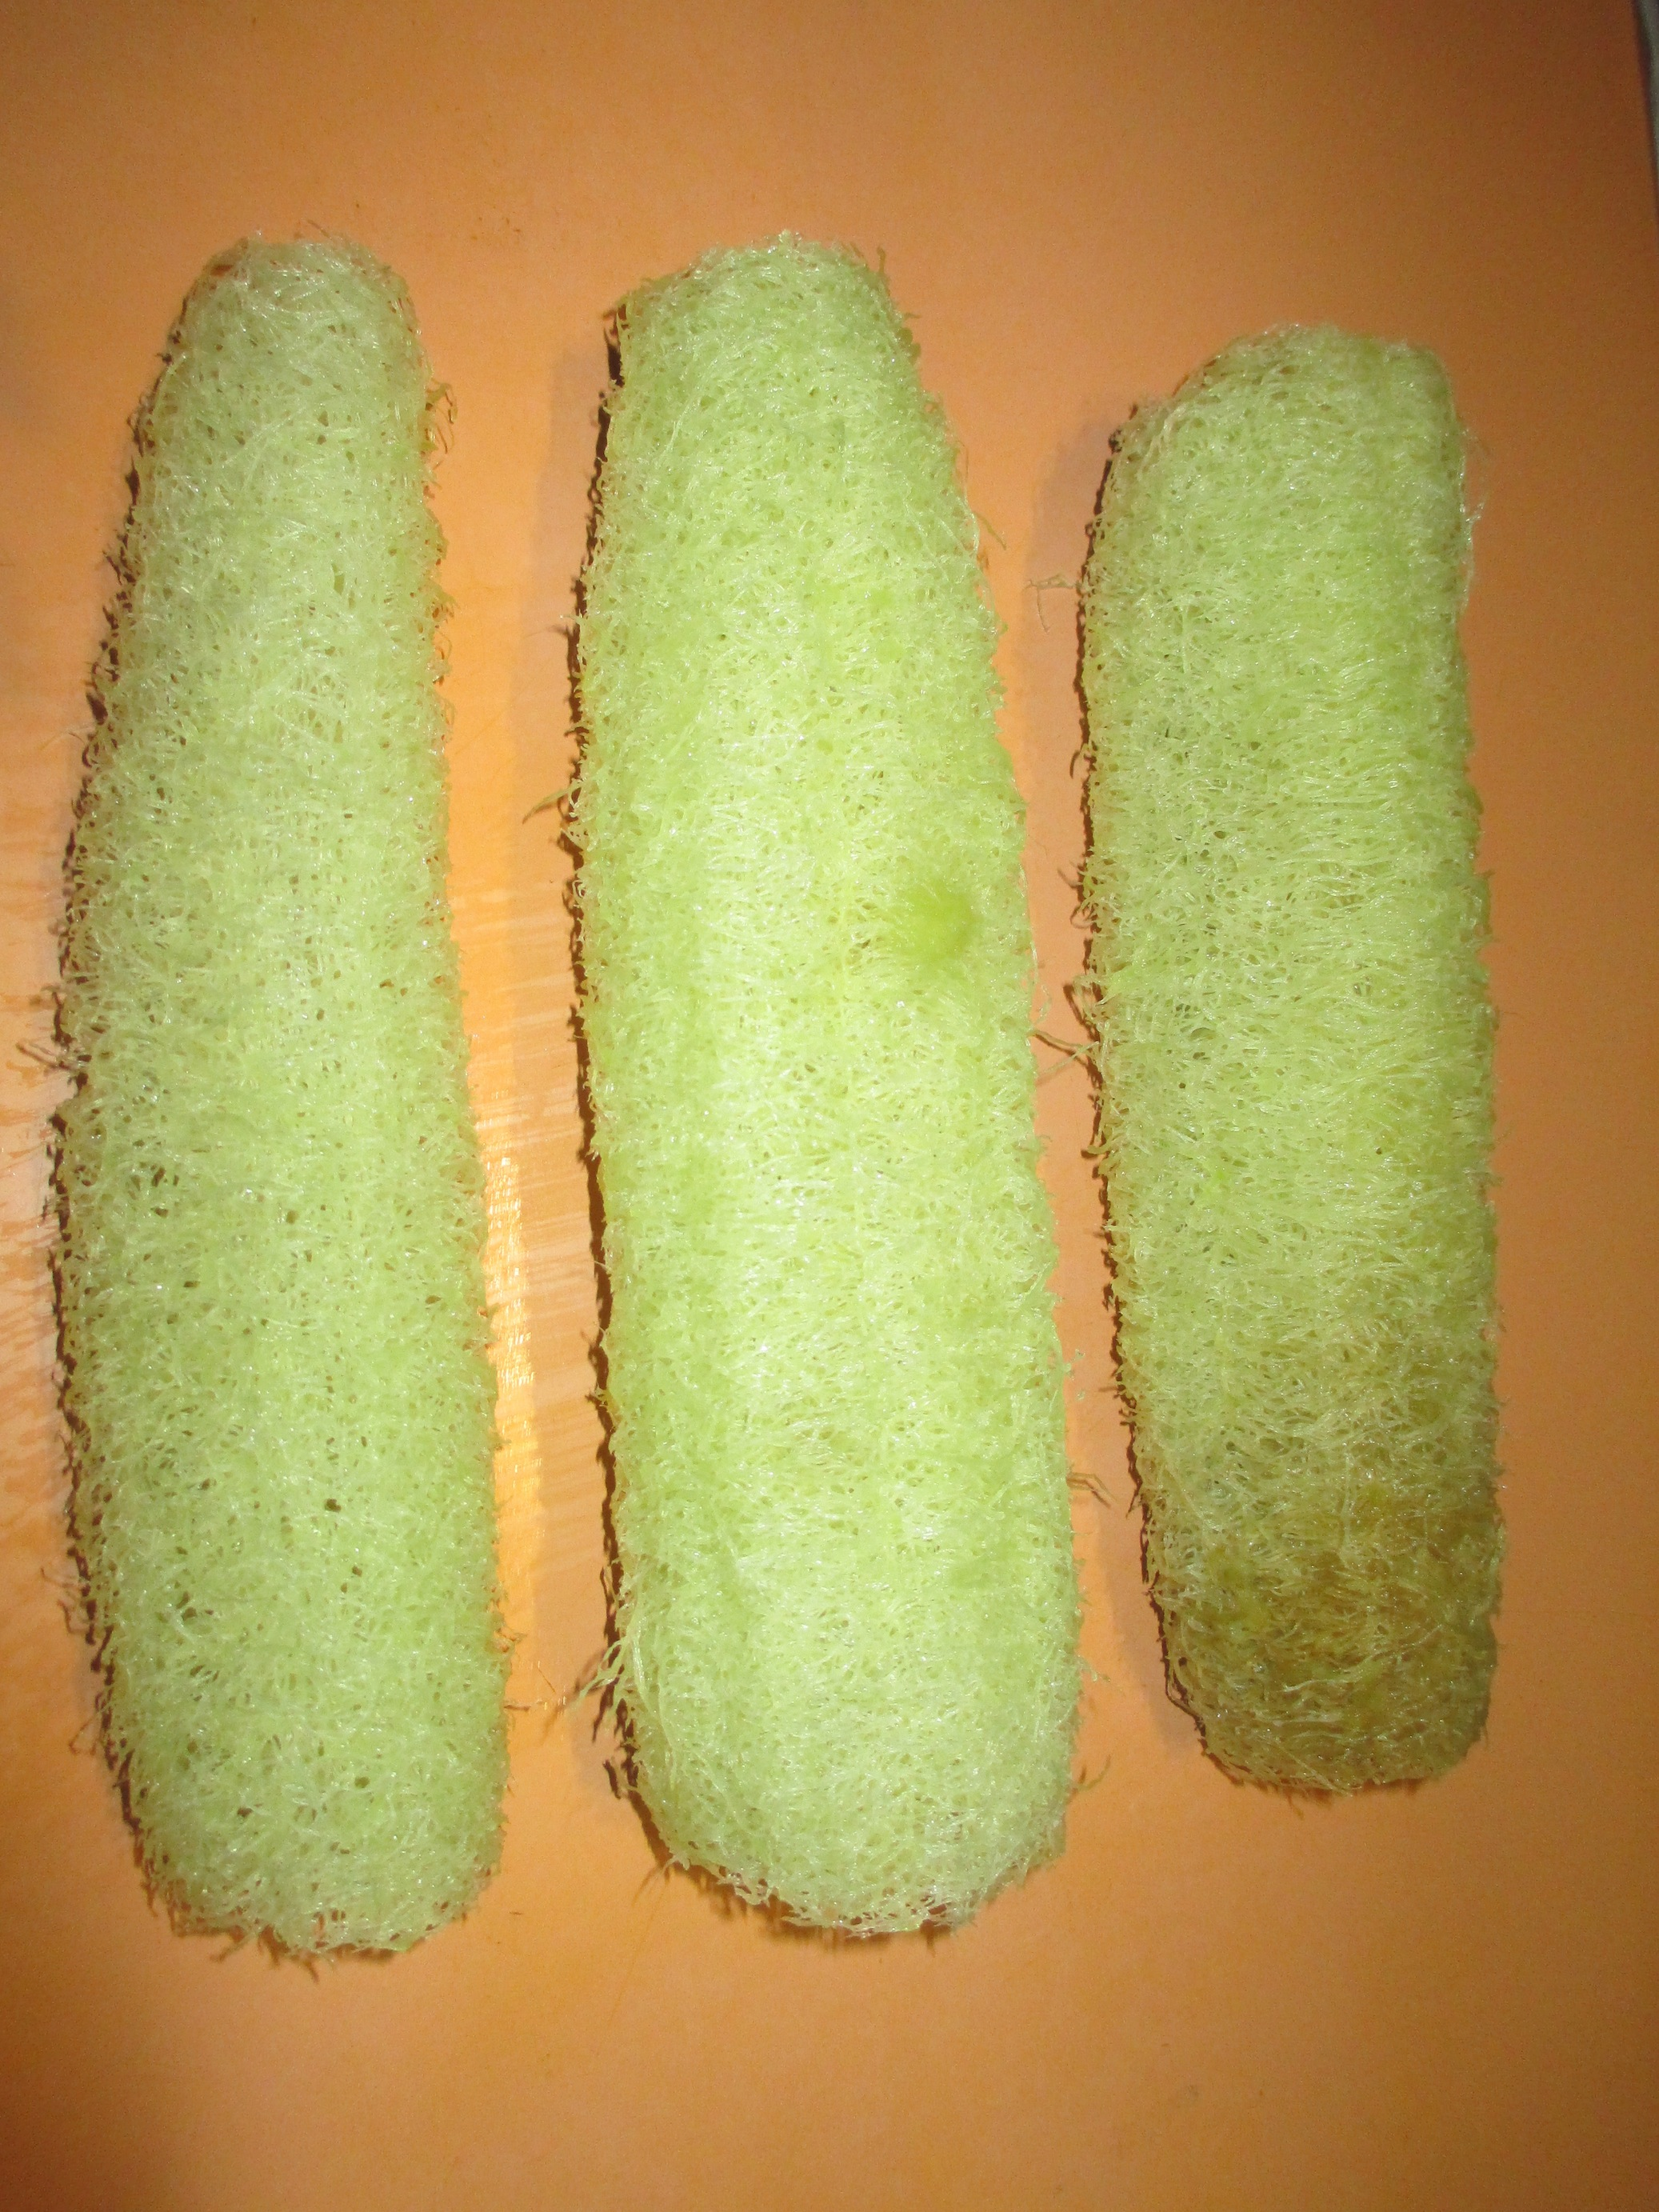 Cleaned luffa ready to dry